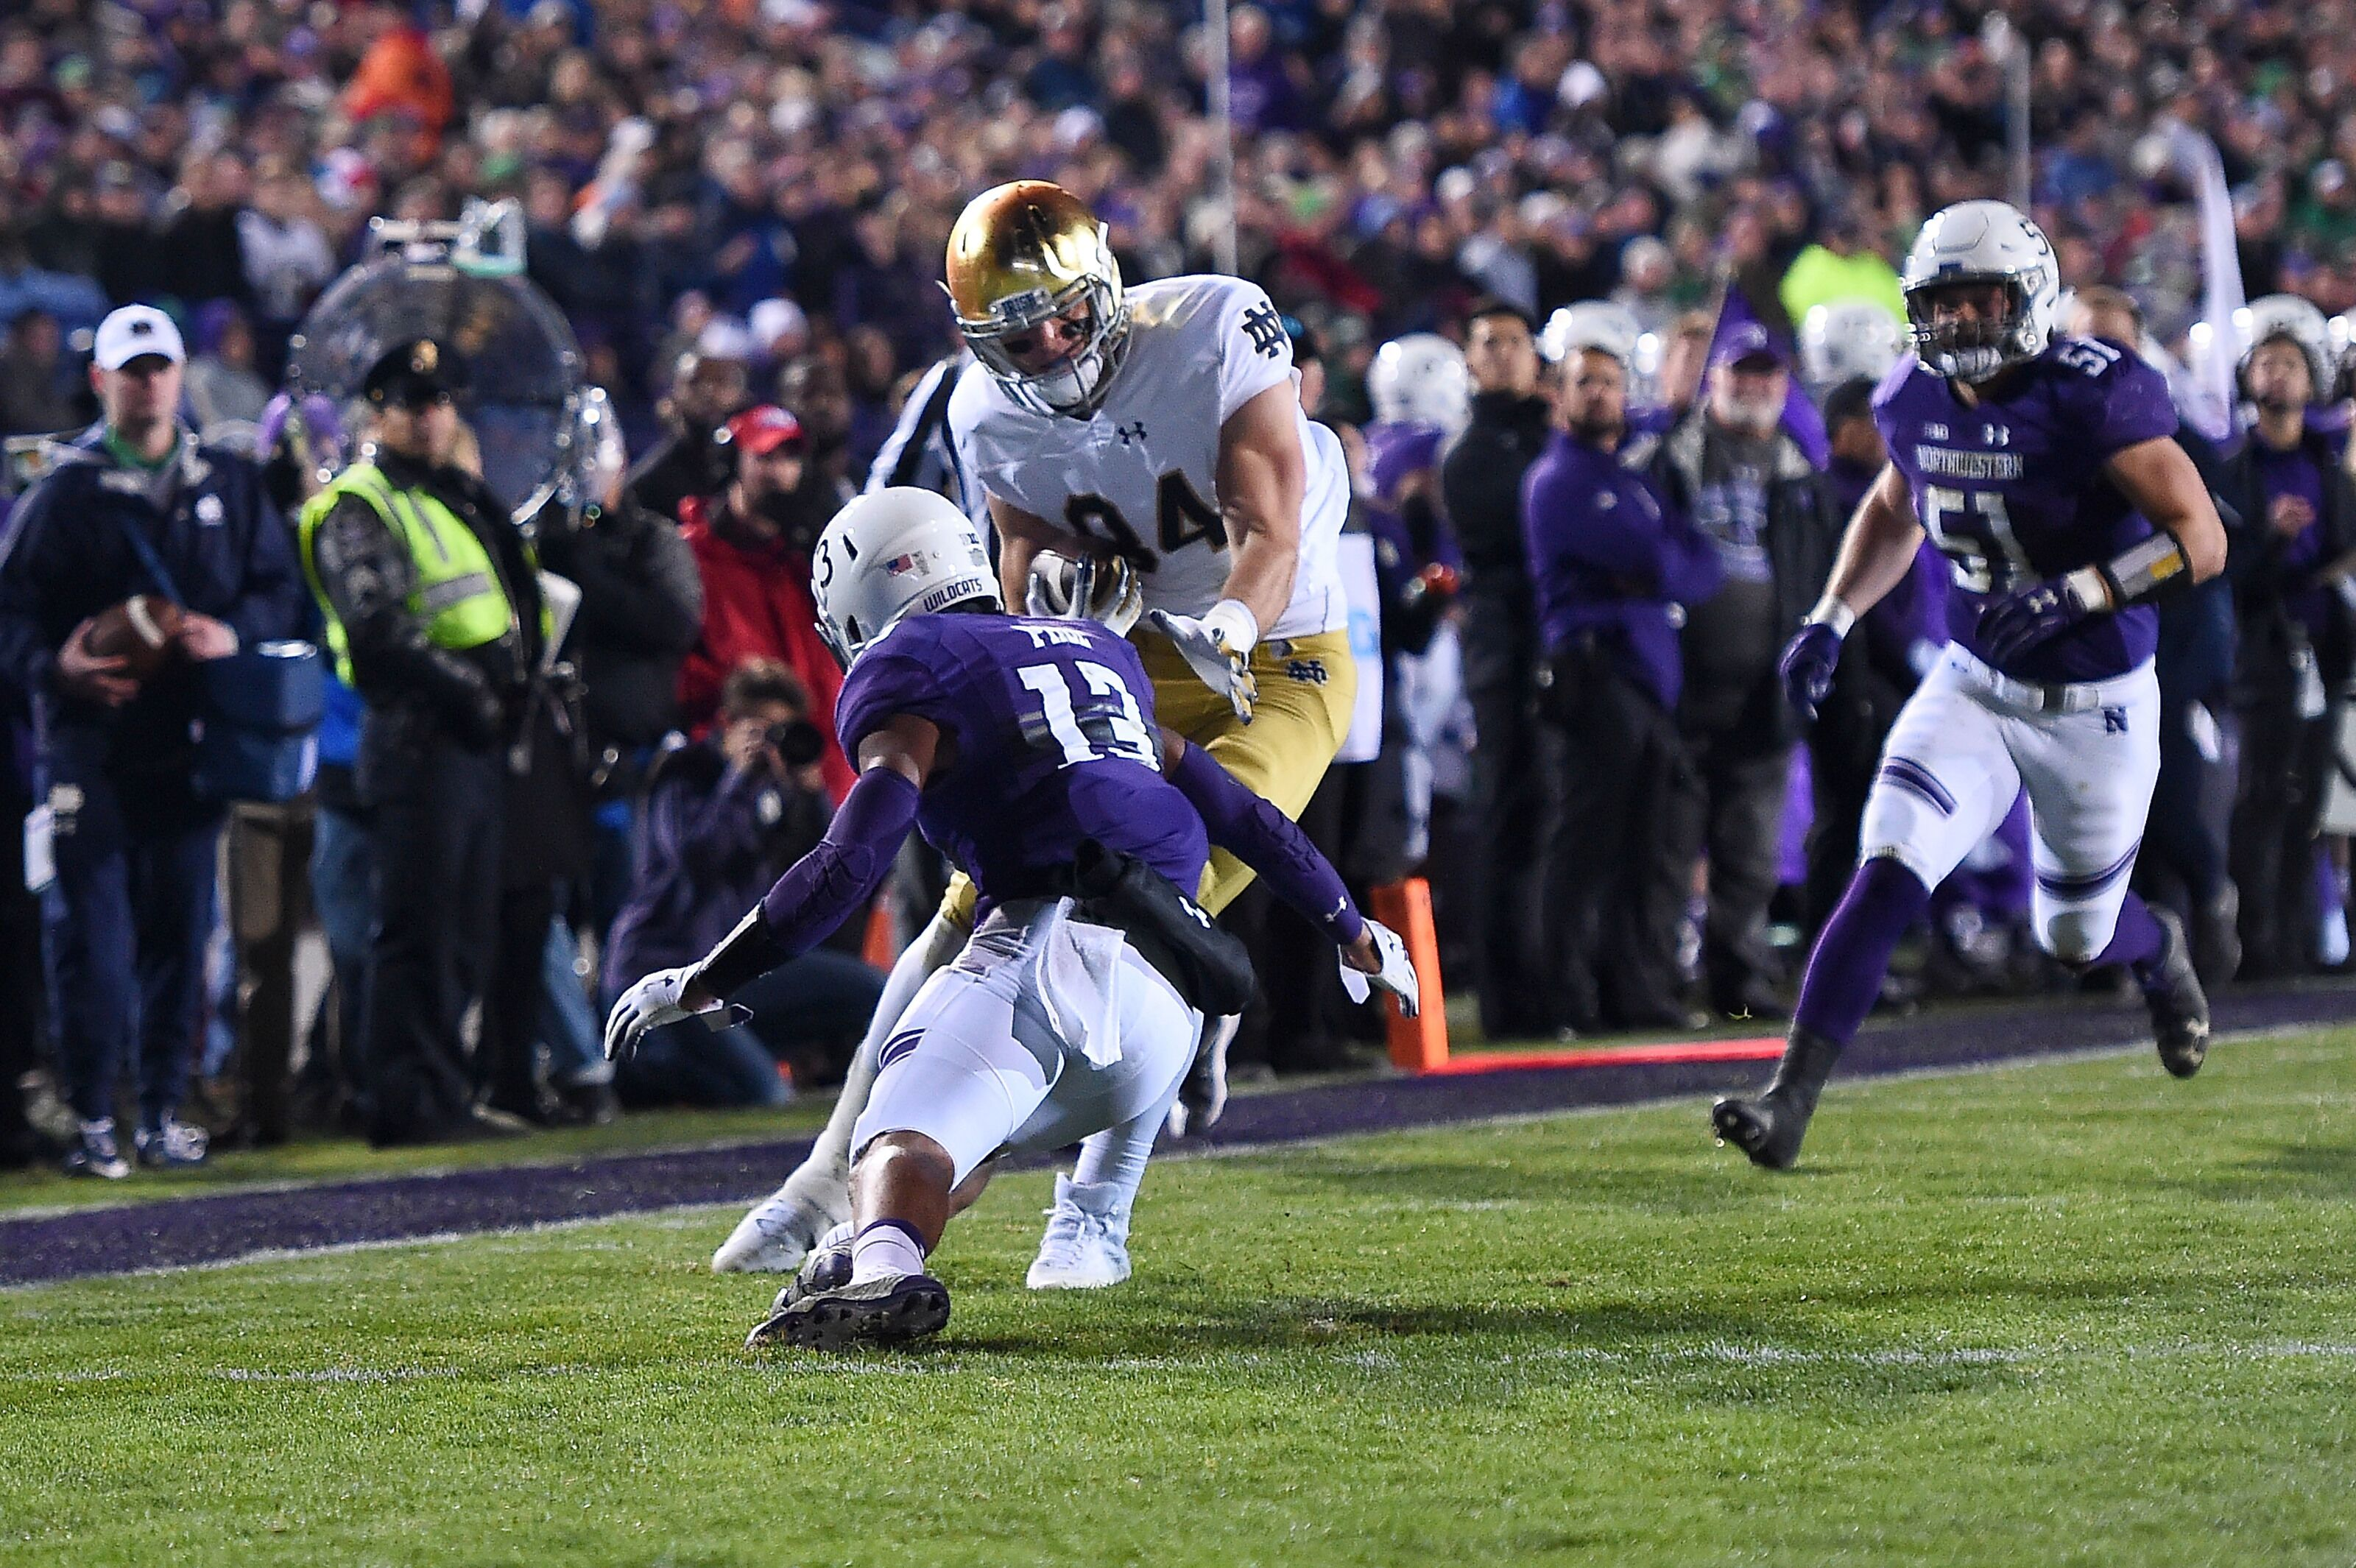 b0aa5f3cf15 Notre Dame Football: Cole Kmet Could Cash in on NFL's Tight End Trend